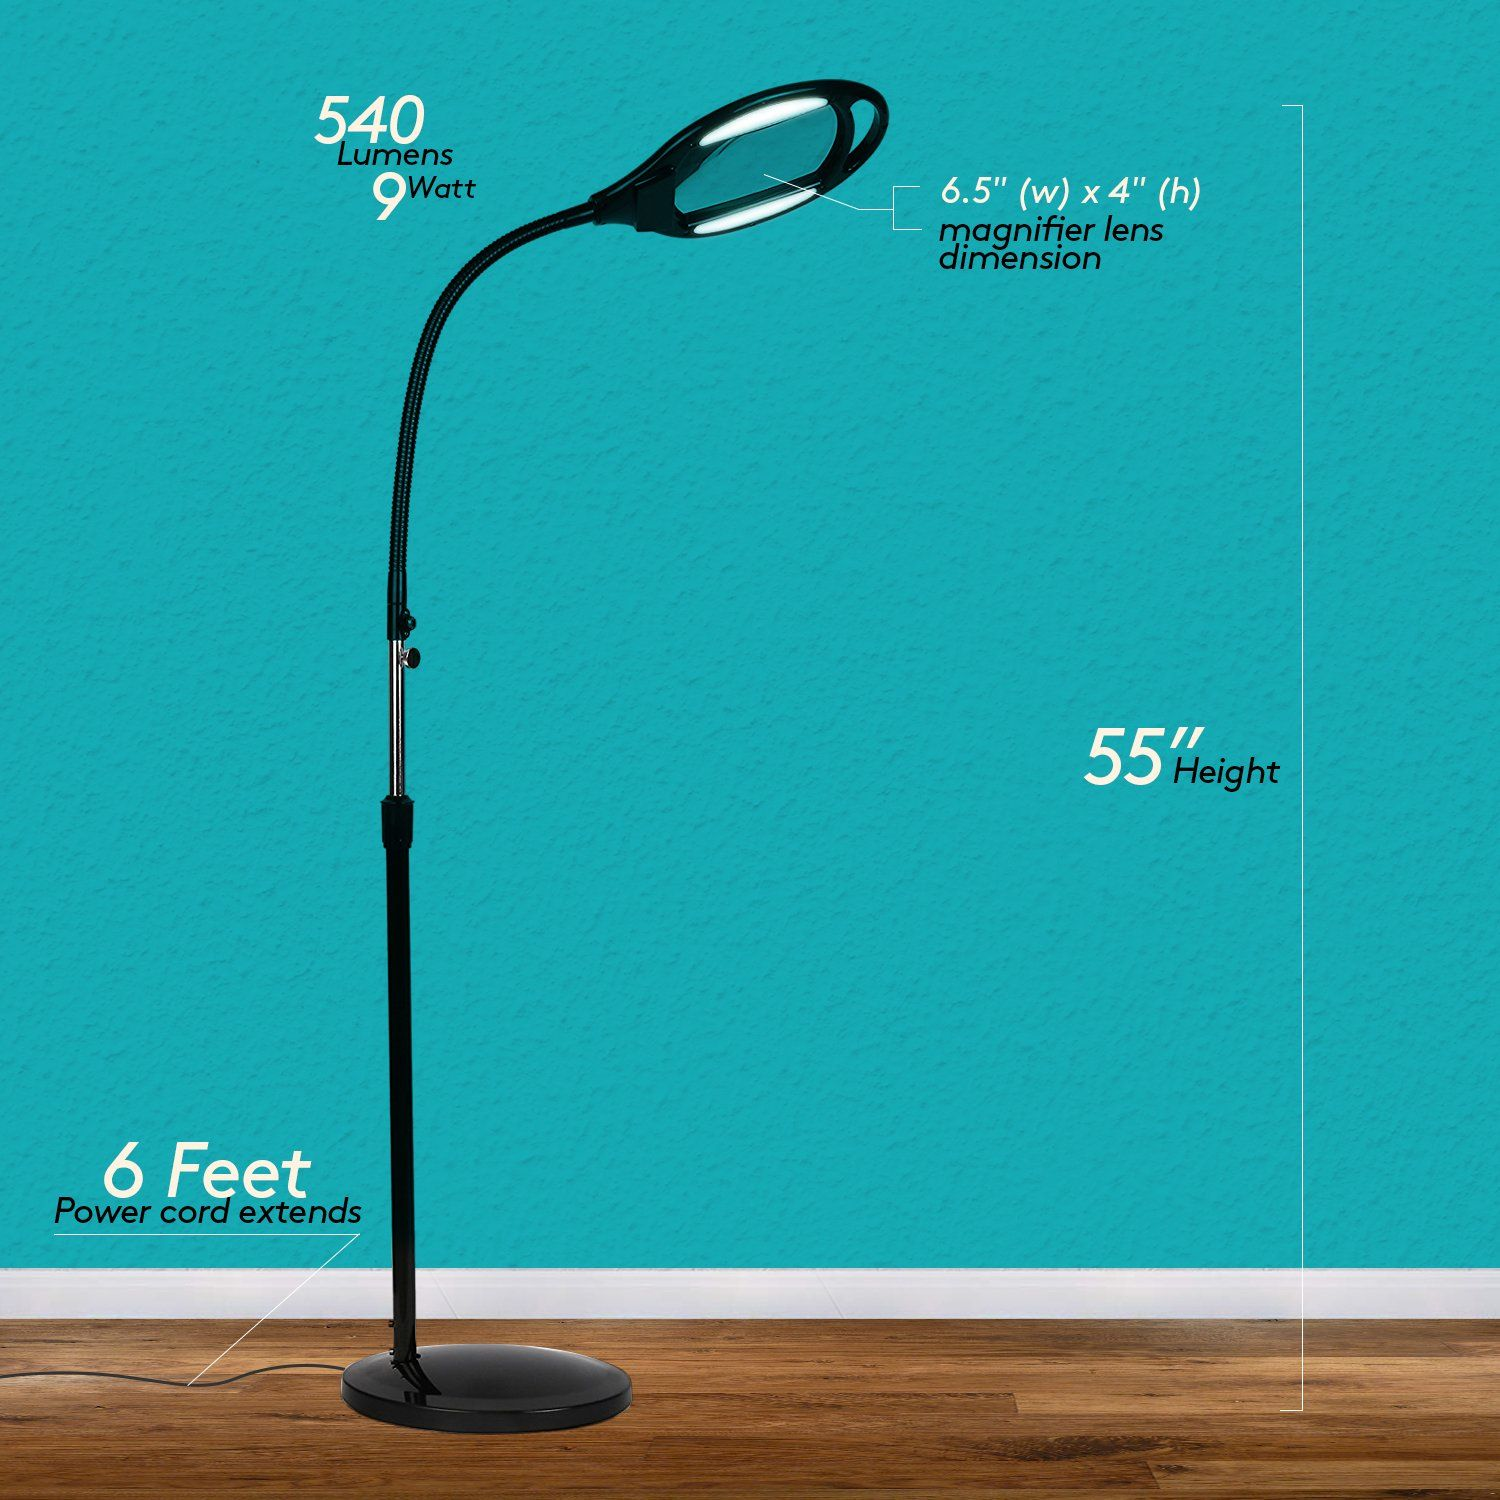 Brightech Lightview Pro Led Magnifying Glass Floor Lamp Magnifier With Bright Light For Reading Tasks And Crafts He Glass Floor Lamp Light Fixtures Magnifier